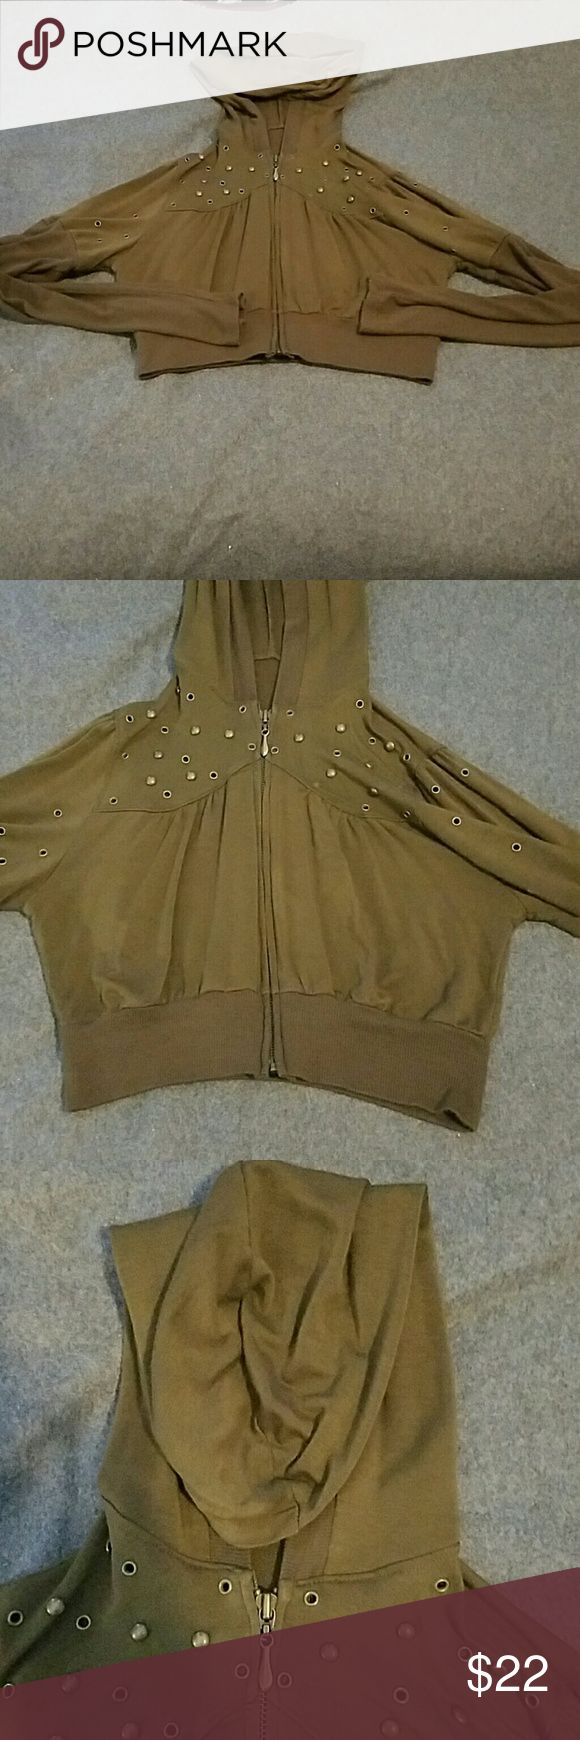 Olive green crop top hoodie sz M Brand unknown, had to cut out tag because it was itching me - all l remember is that l bought it at Hot Topic, size Medium, crop top, cuts off just below rib cage, gold-ish metal studs around collar, long sleeved Hot Topic Tops Sweatshirts & Hoodies